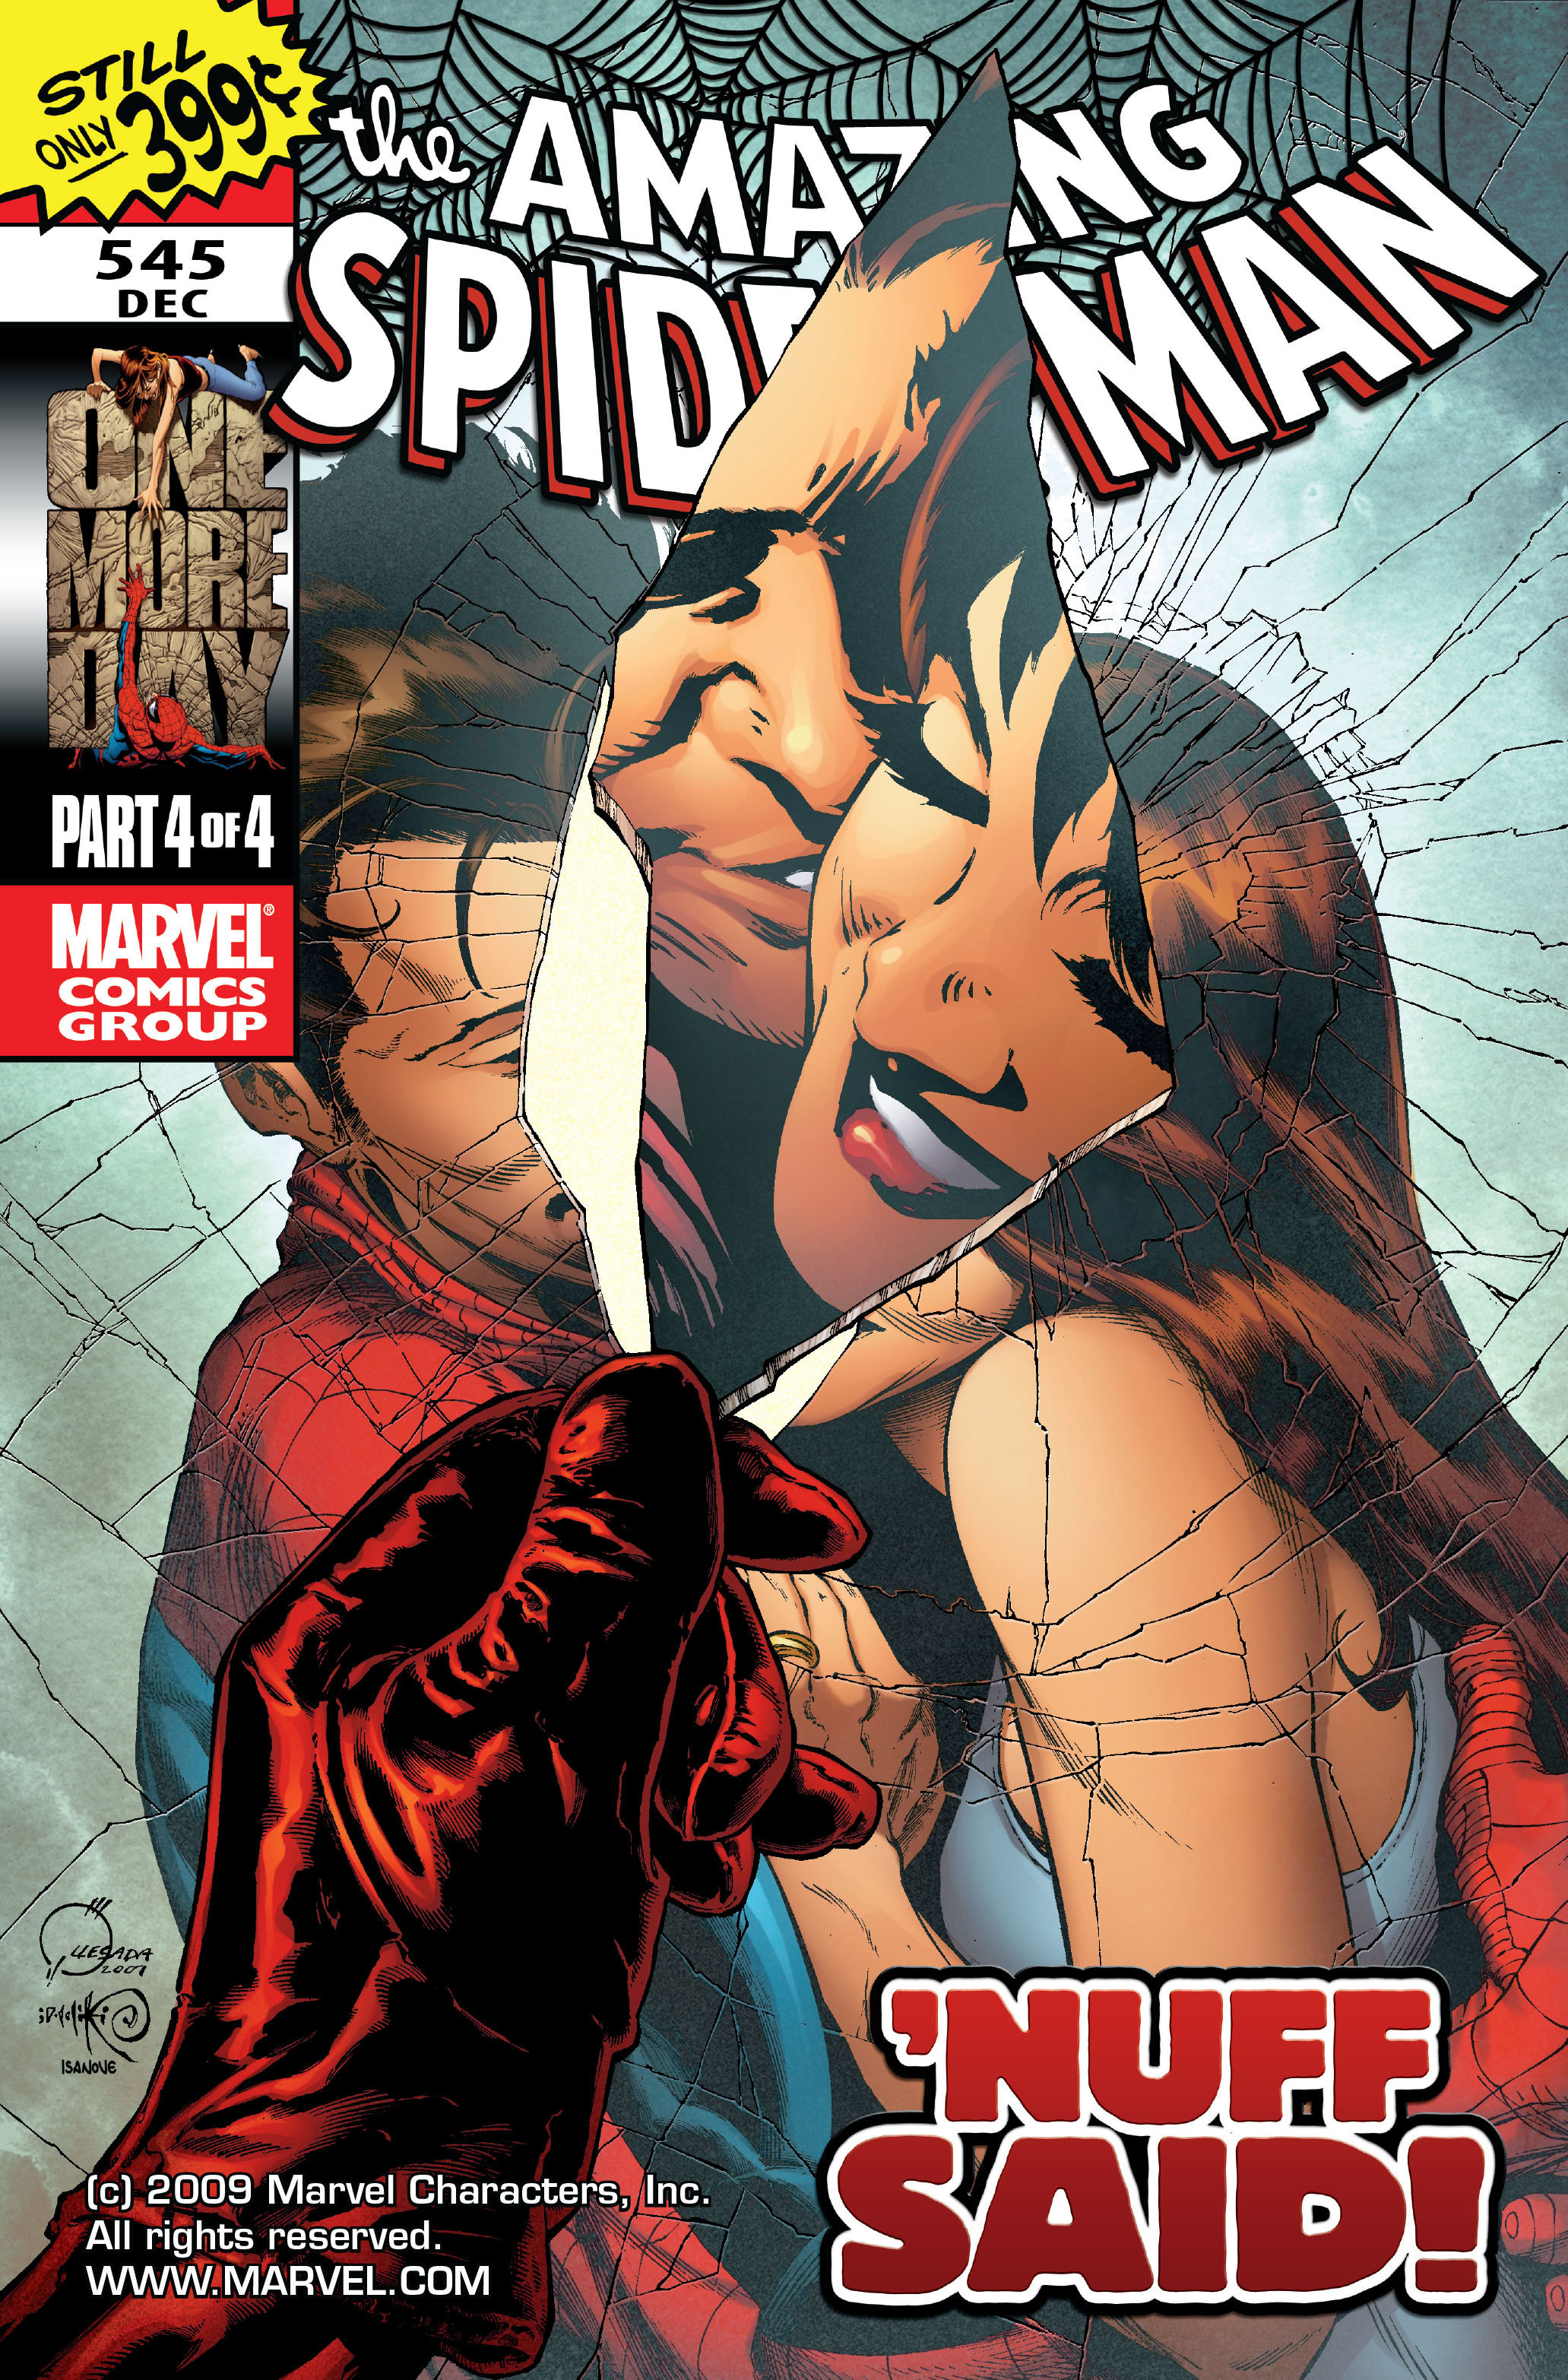 Amazing Spider-Man Vol 1 545